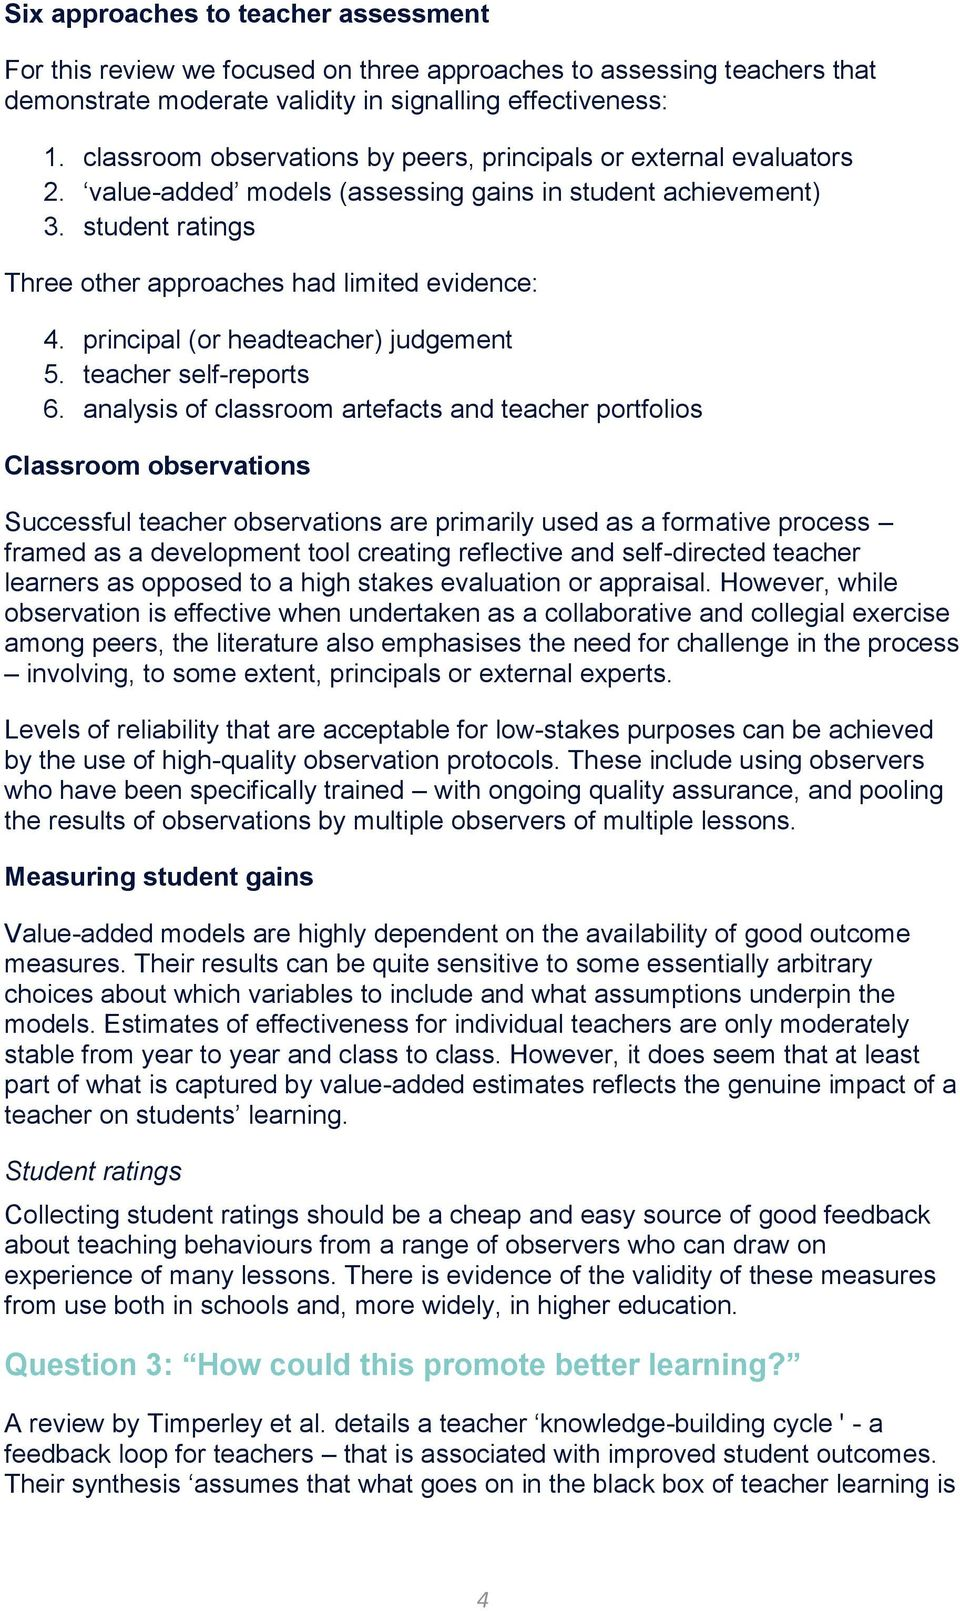 principal (or headteacher) judgement 5. teacher self-reports 6.